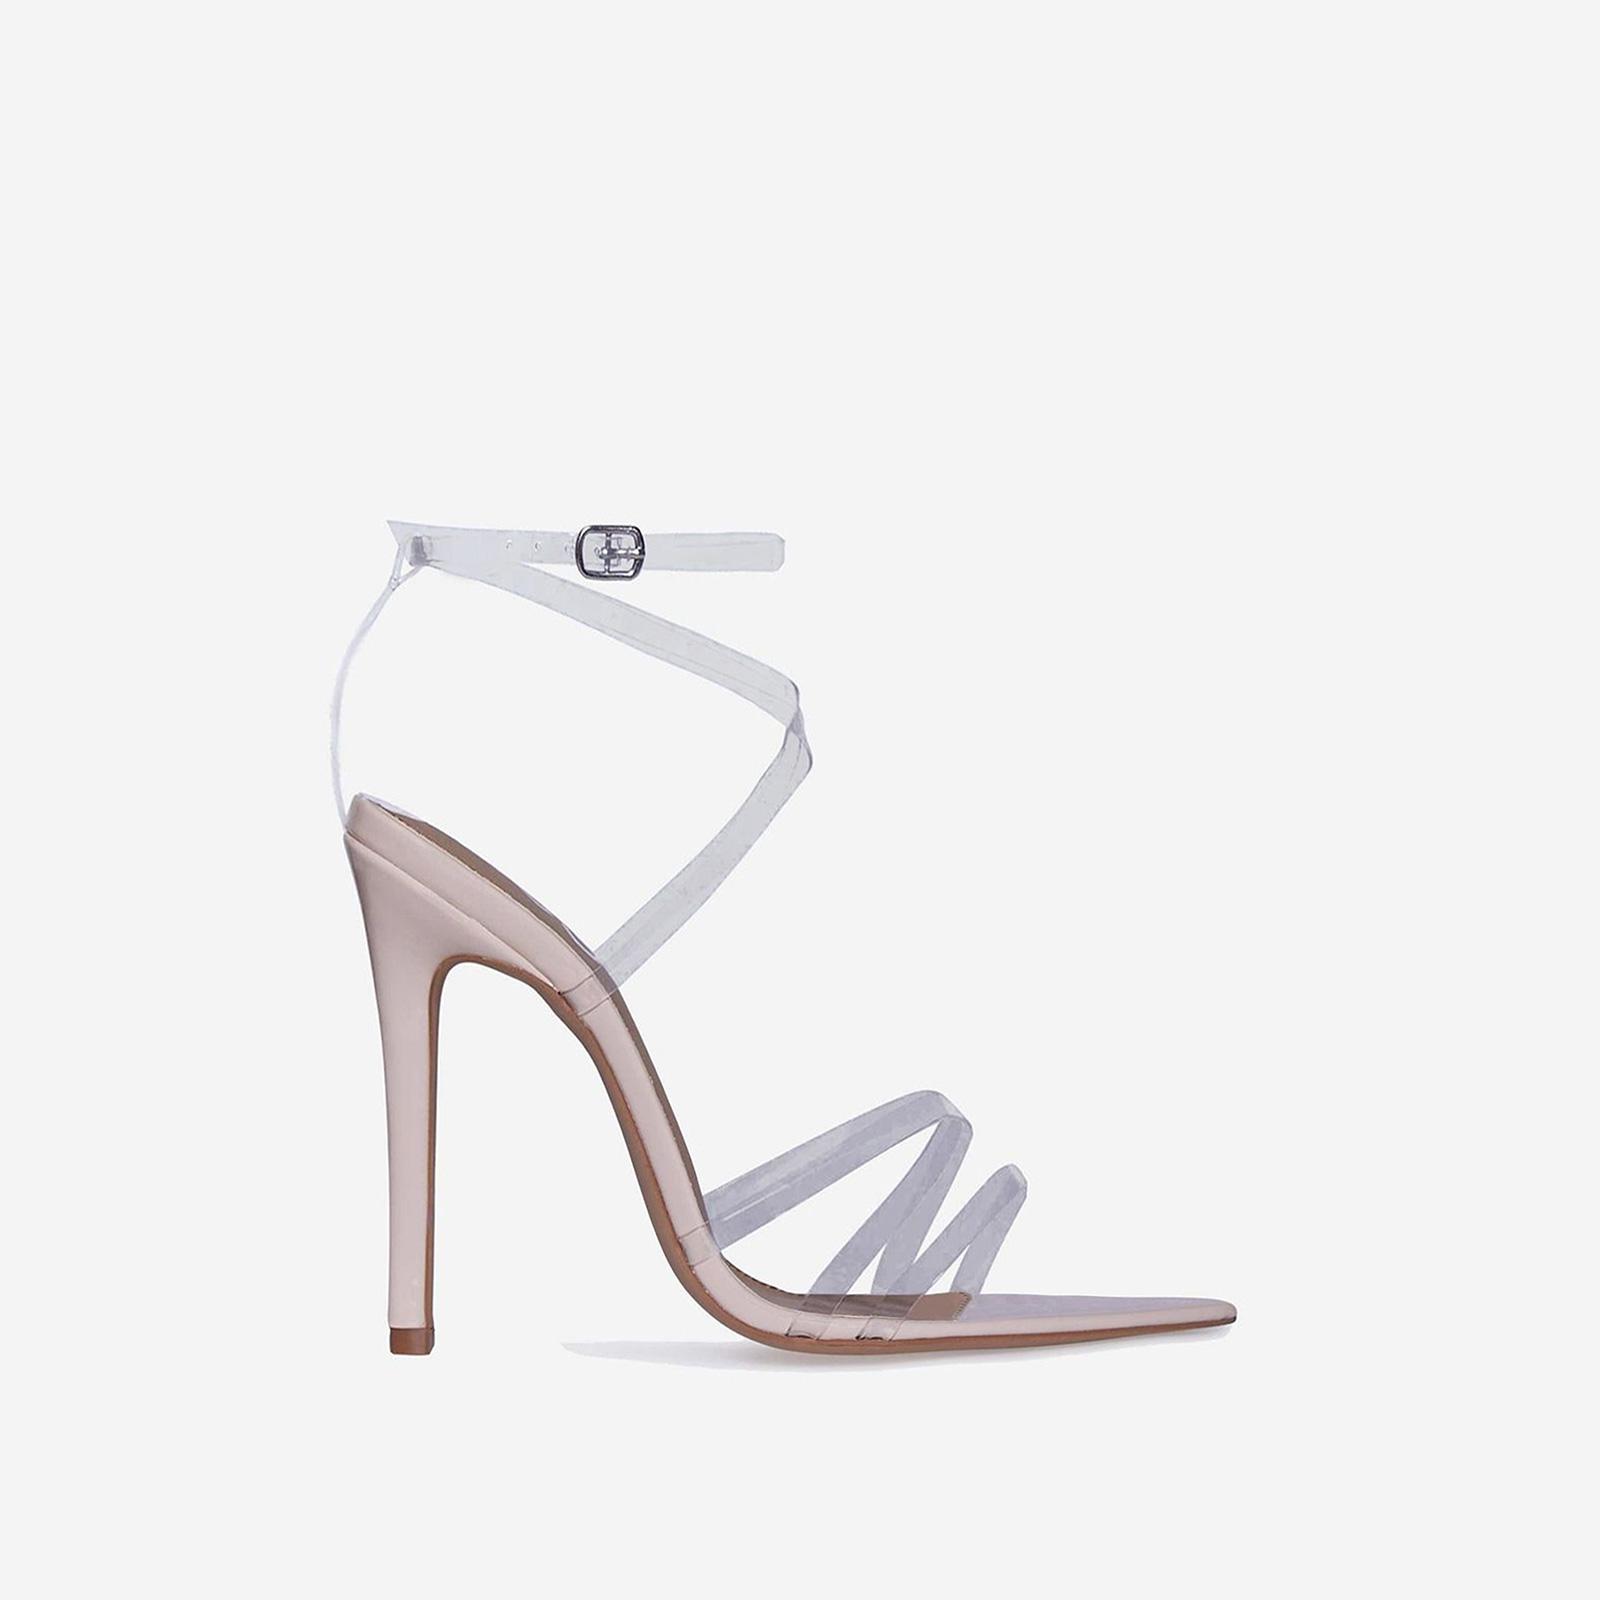 Tiffany Pointed Perspex Barely There Heel In Nude Patent